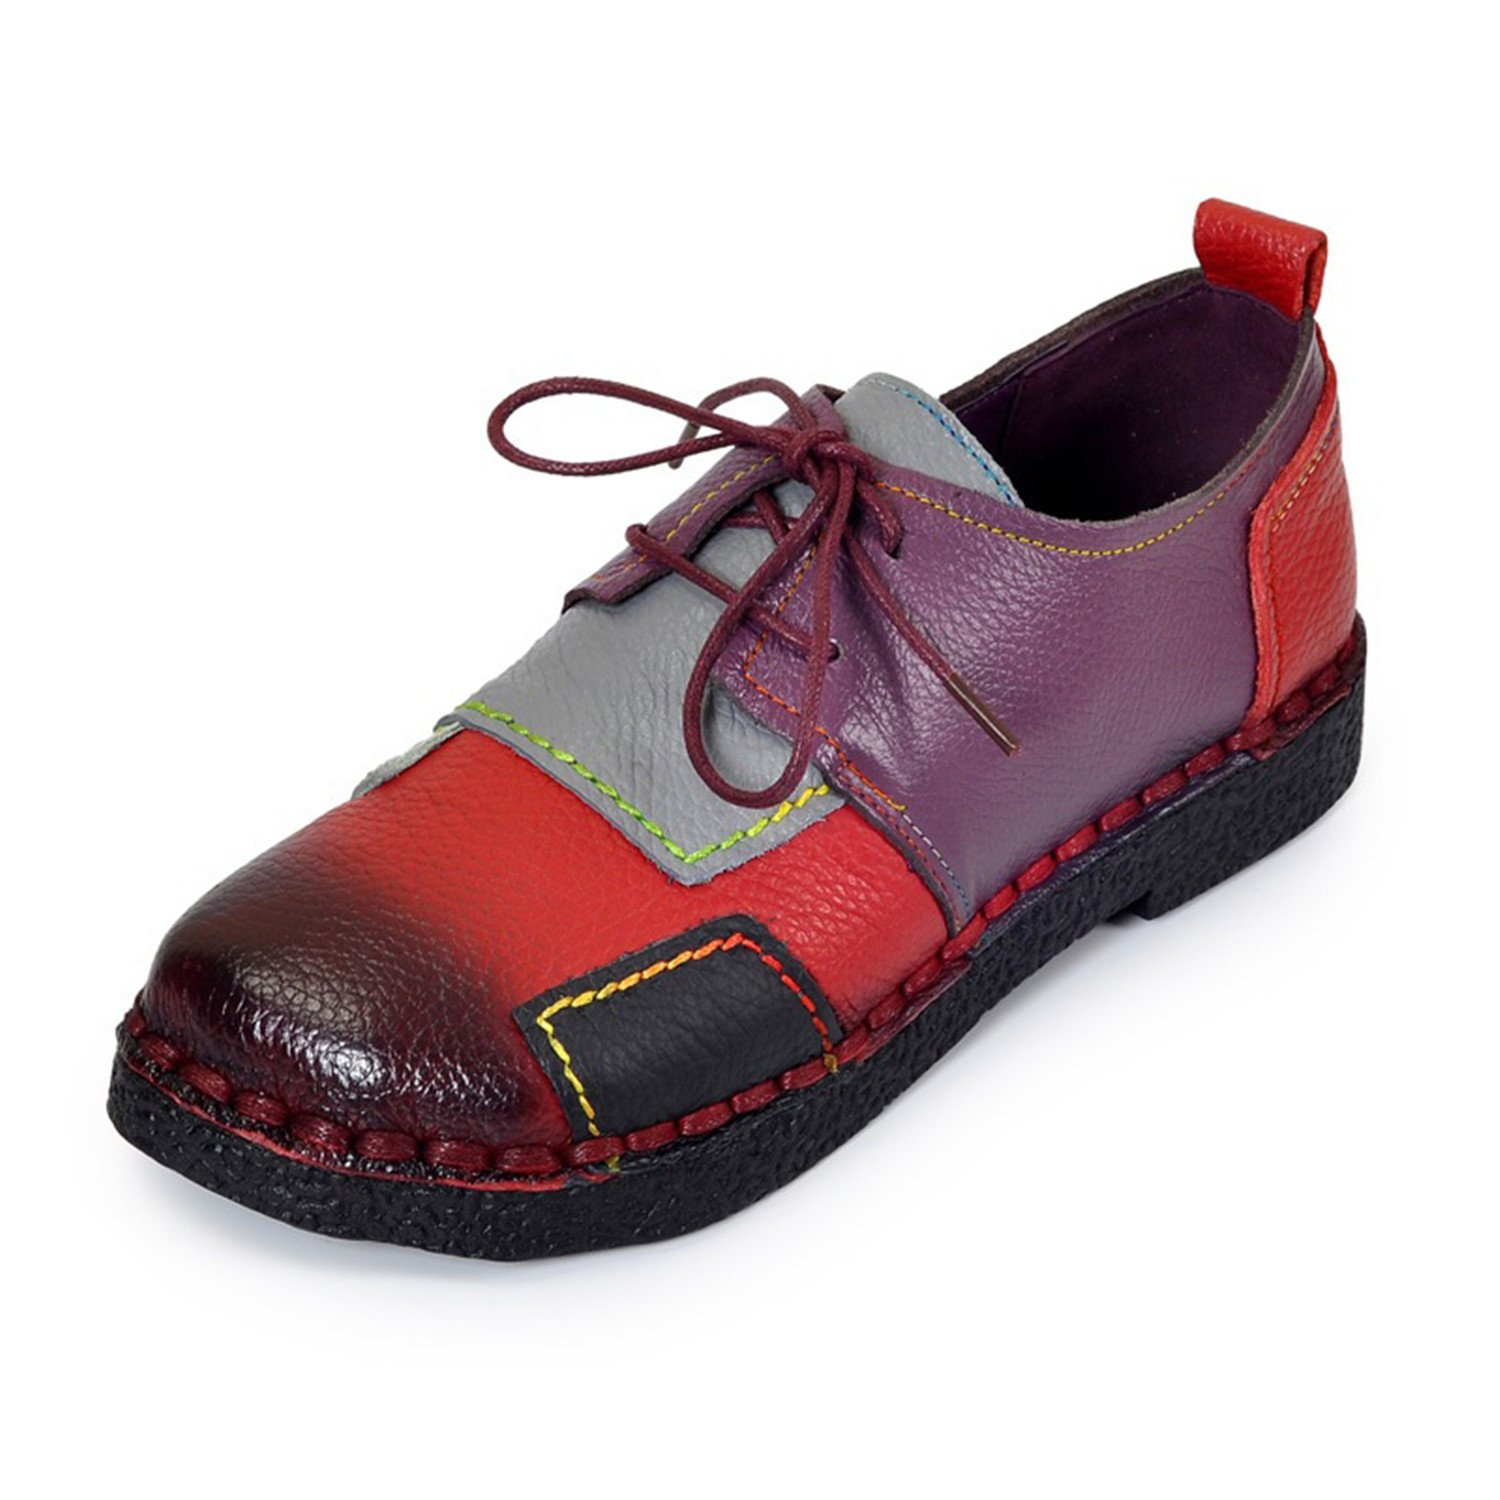 Surprising Day Womens Handmade Shoes Genuine Leather Flat Lacing Mother Shoes Woman Loafers Soft Single Casual Shoes Women Flats